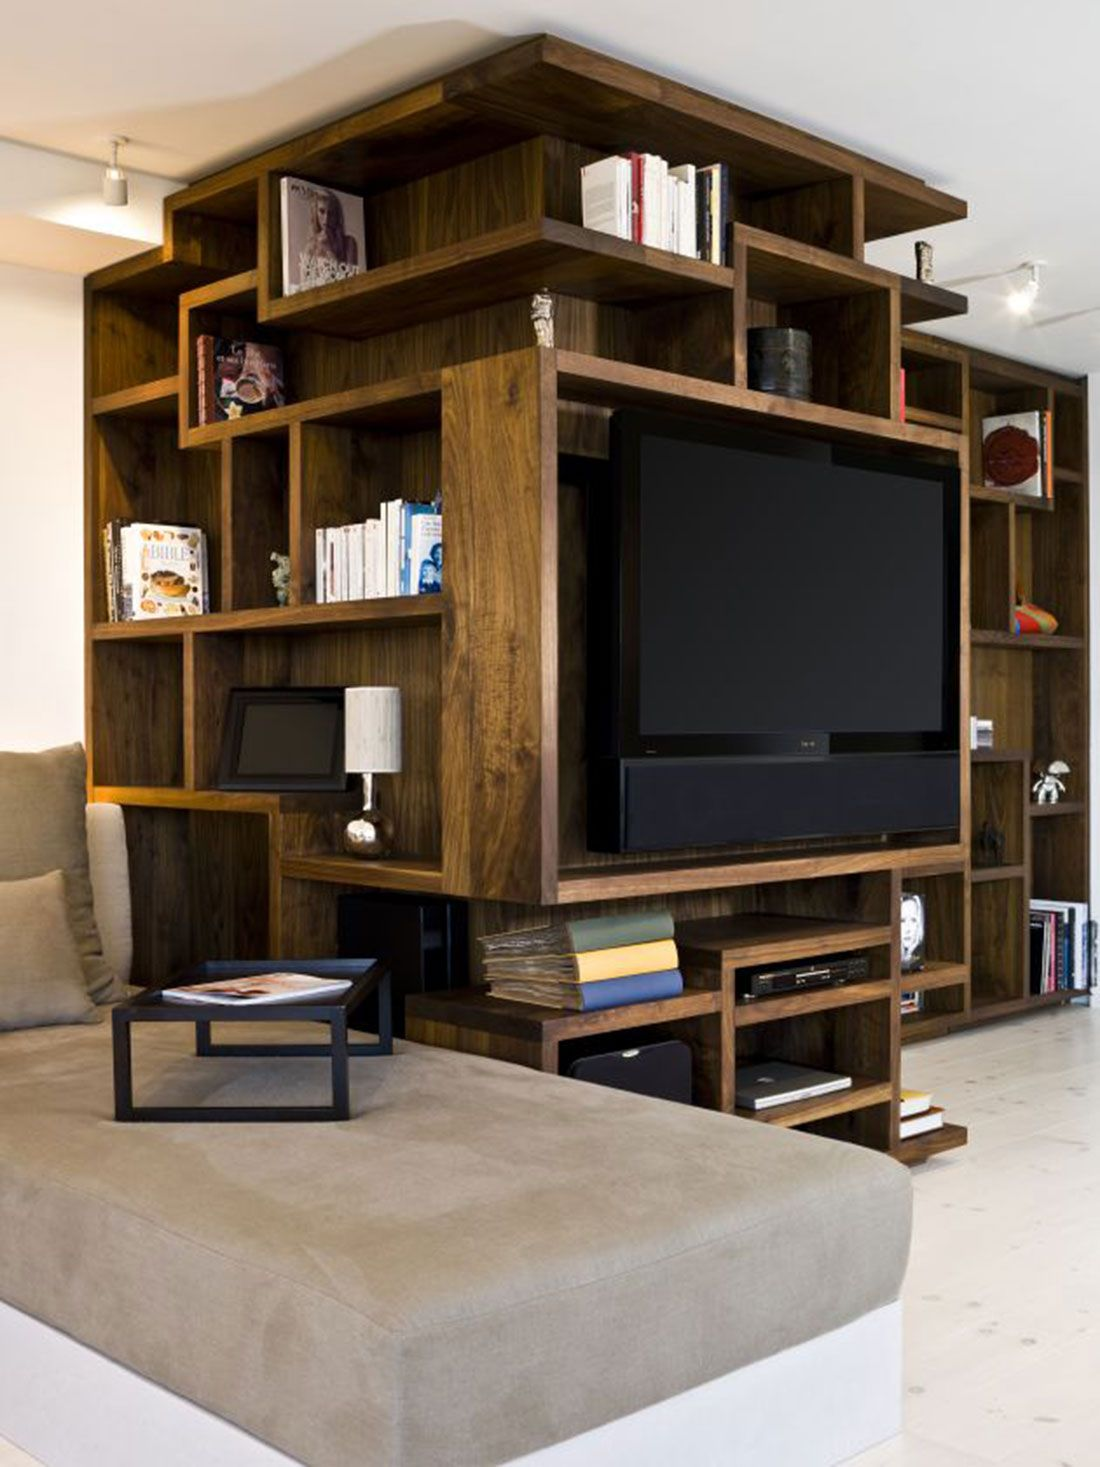 bookcase design ideas there are plenty of helpful ideas pertaining to your woodworking projects at http